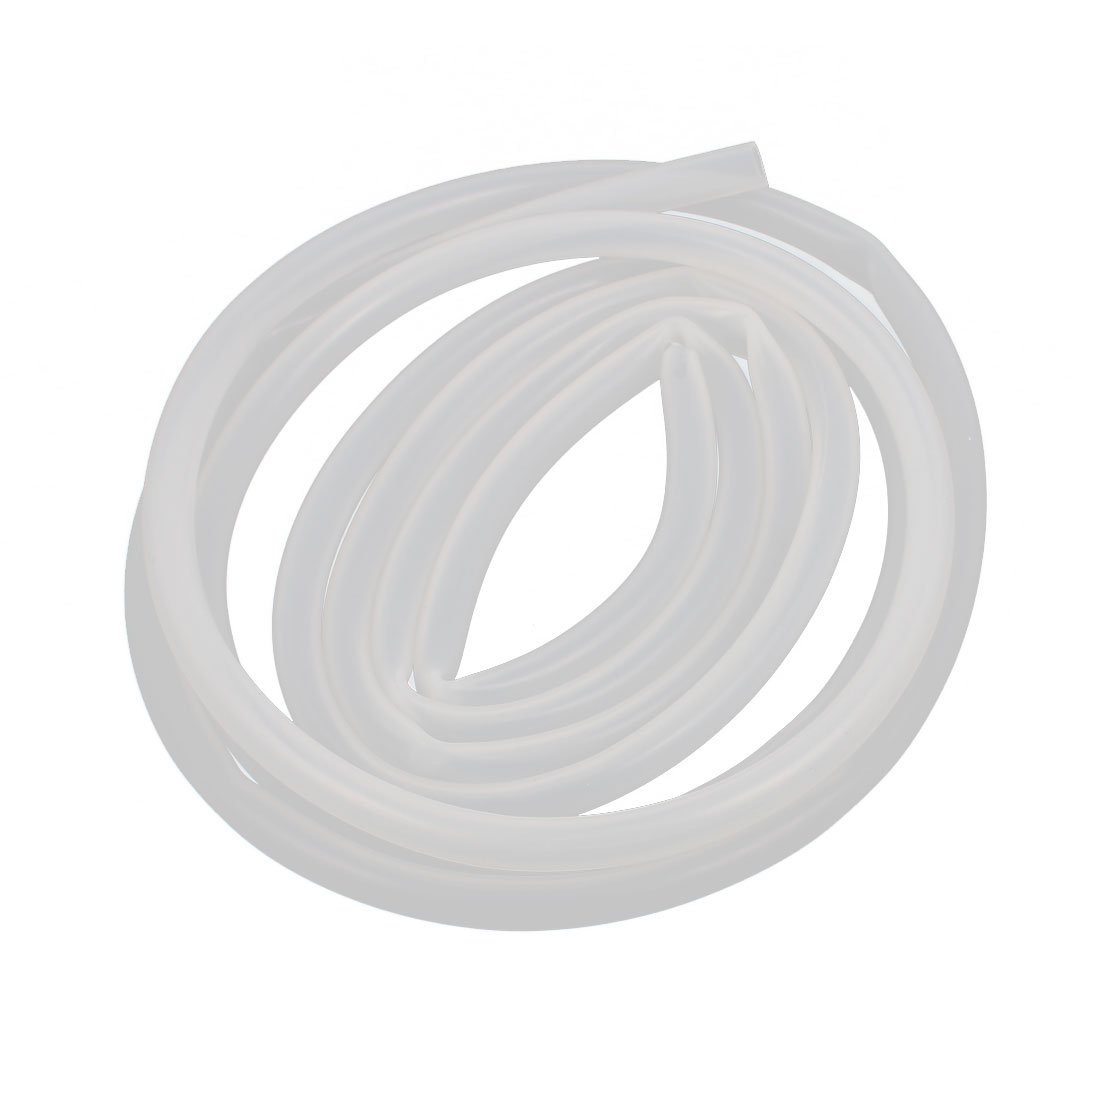 sourcingmap Silicone Tube 16mm ID X 20mm OD 3.3 Flexible Silicone Rubber Tubing Water Air Hose Pipe Translucent for Pump Transfer